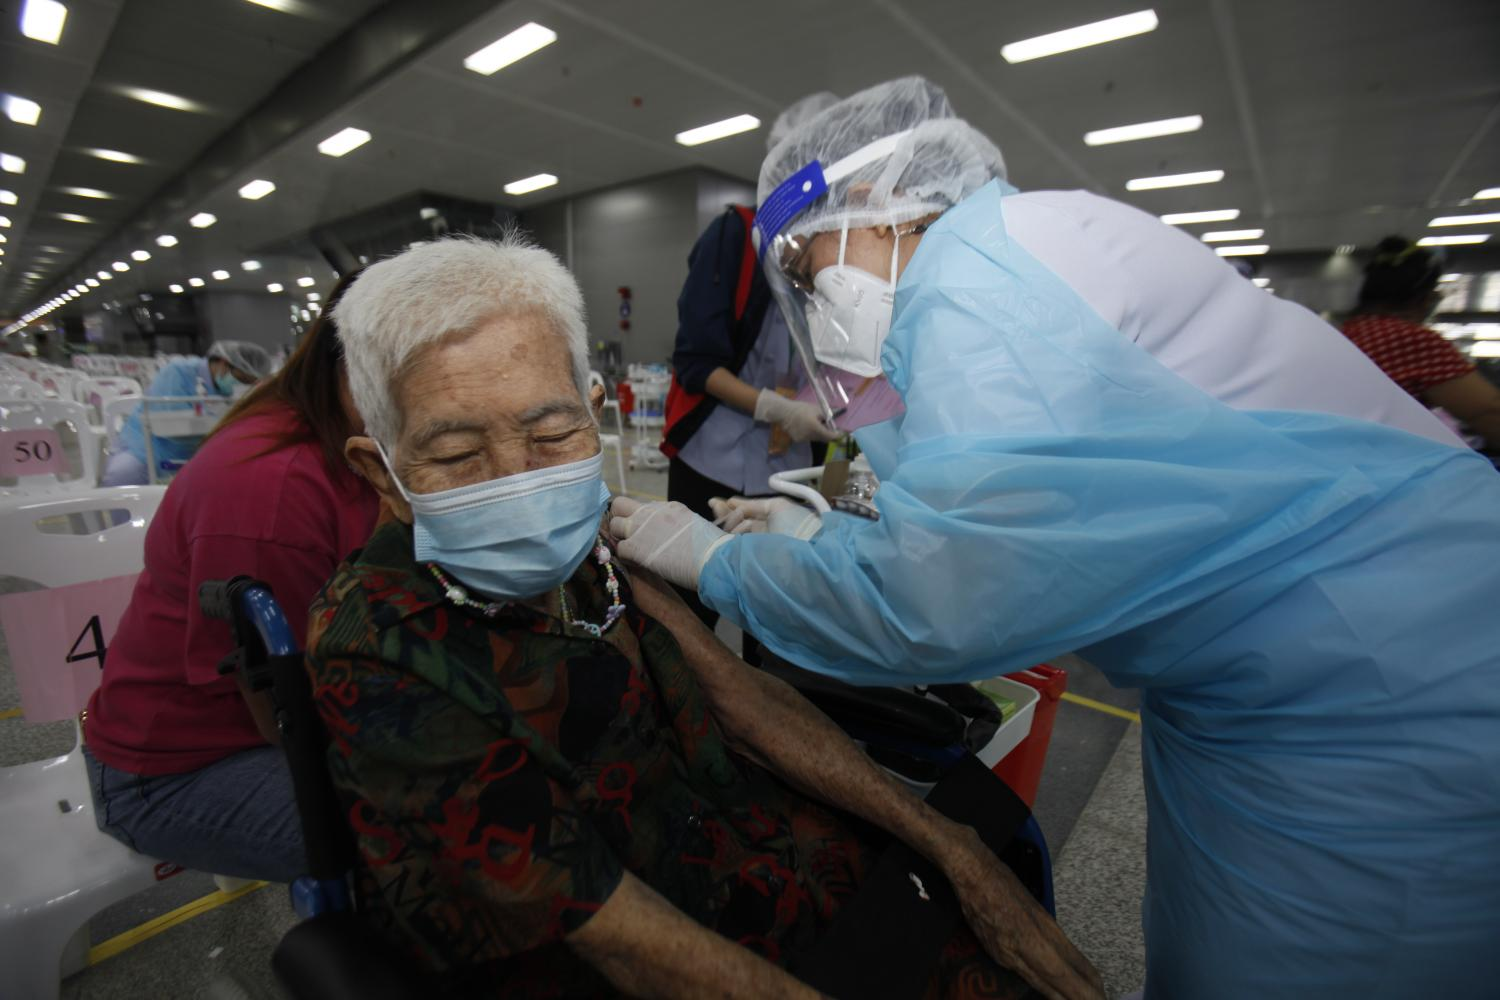 Elderly people flock to Bang Sue Grand Station for Covid-19 shots available for those aged 75 and over. They are allowed one family member or helper each to assist them during the vaccination process.(Photo: Nutthawat Wicheanbut)